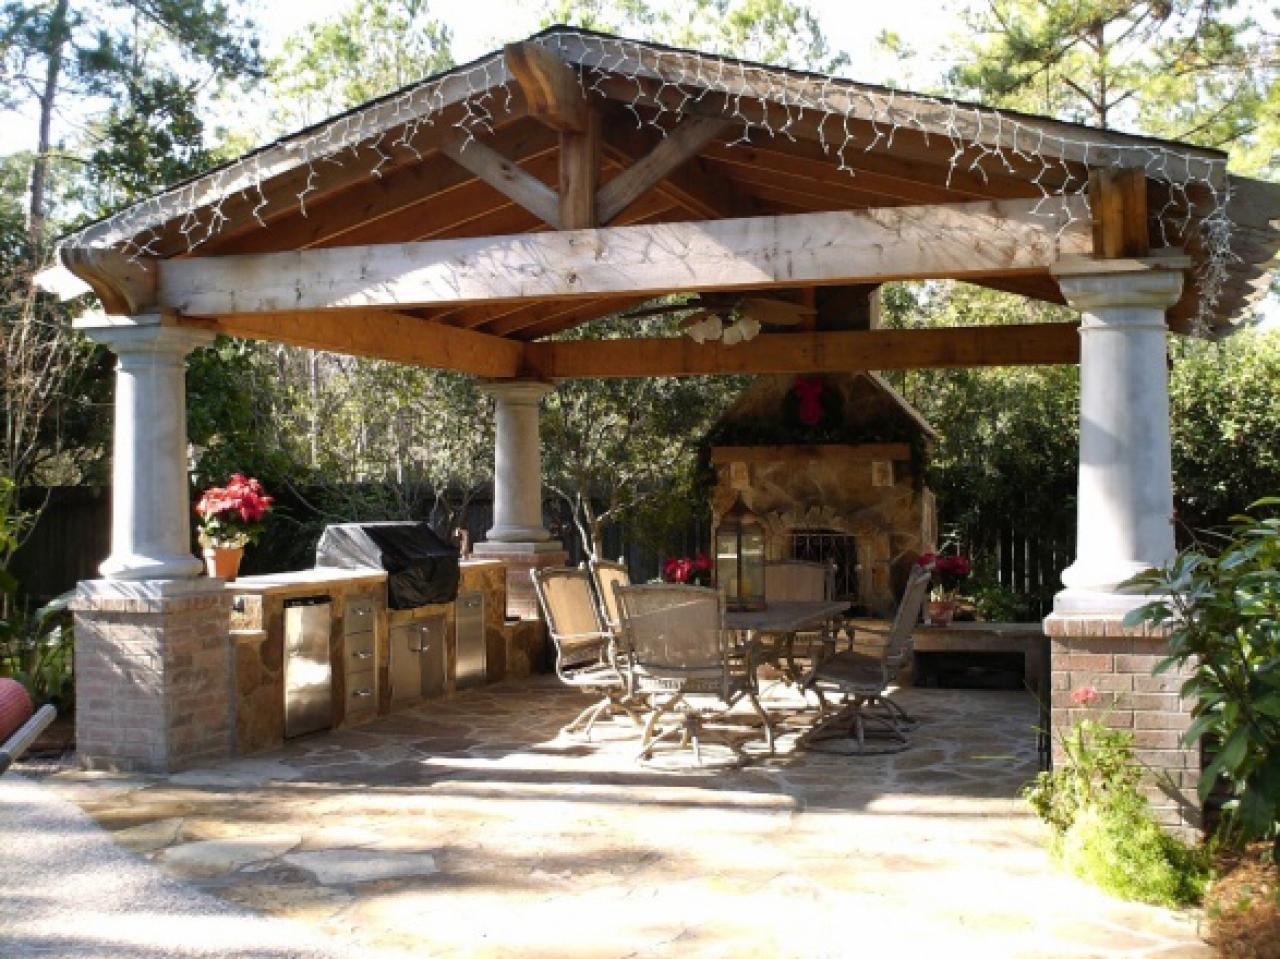 17 Designs For Outdoor Covered Pavilions Images Outdoor Backyard Pavilions Outdoor Pavilion